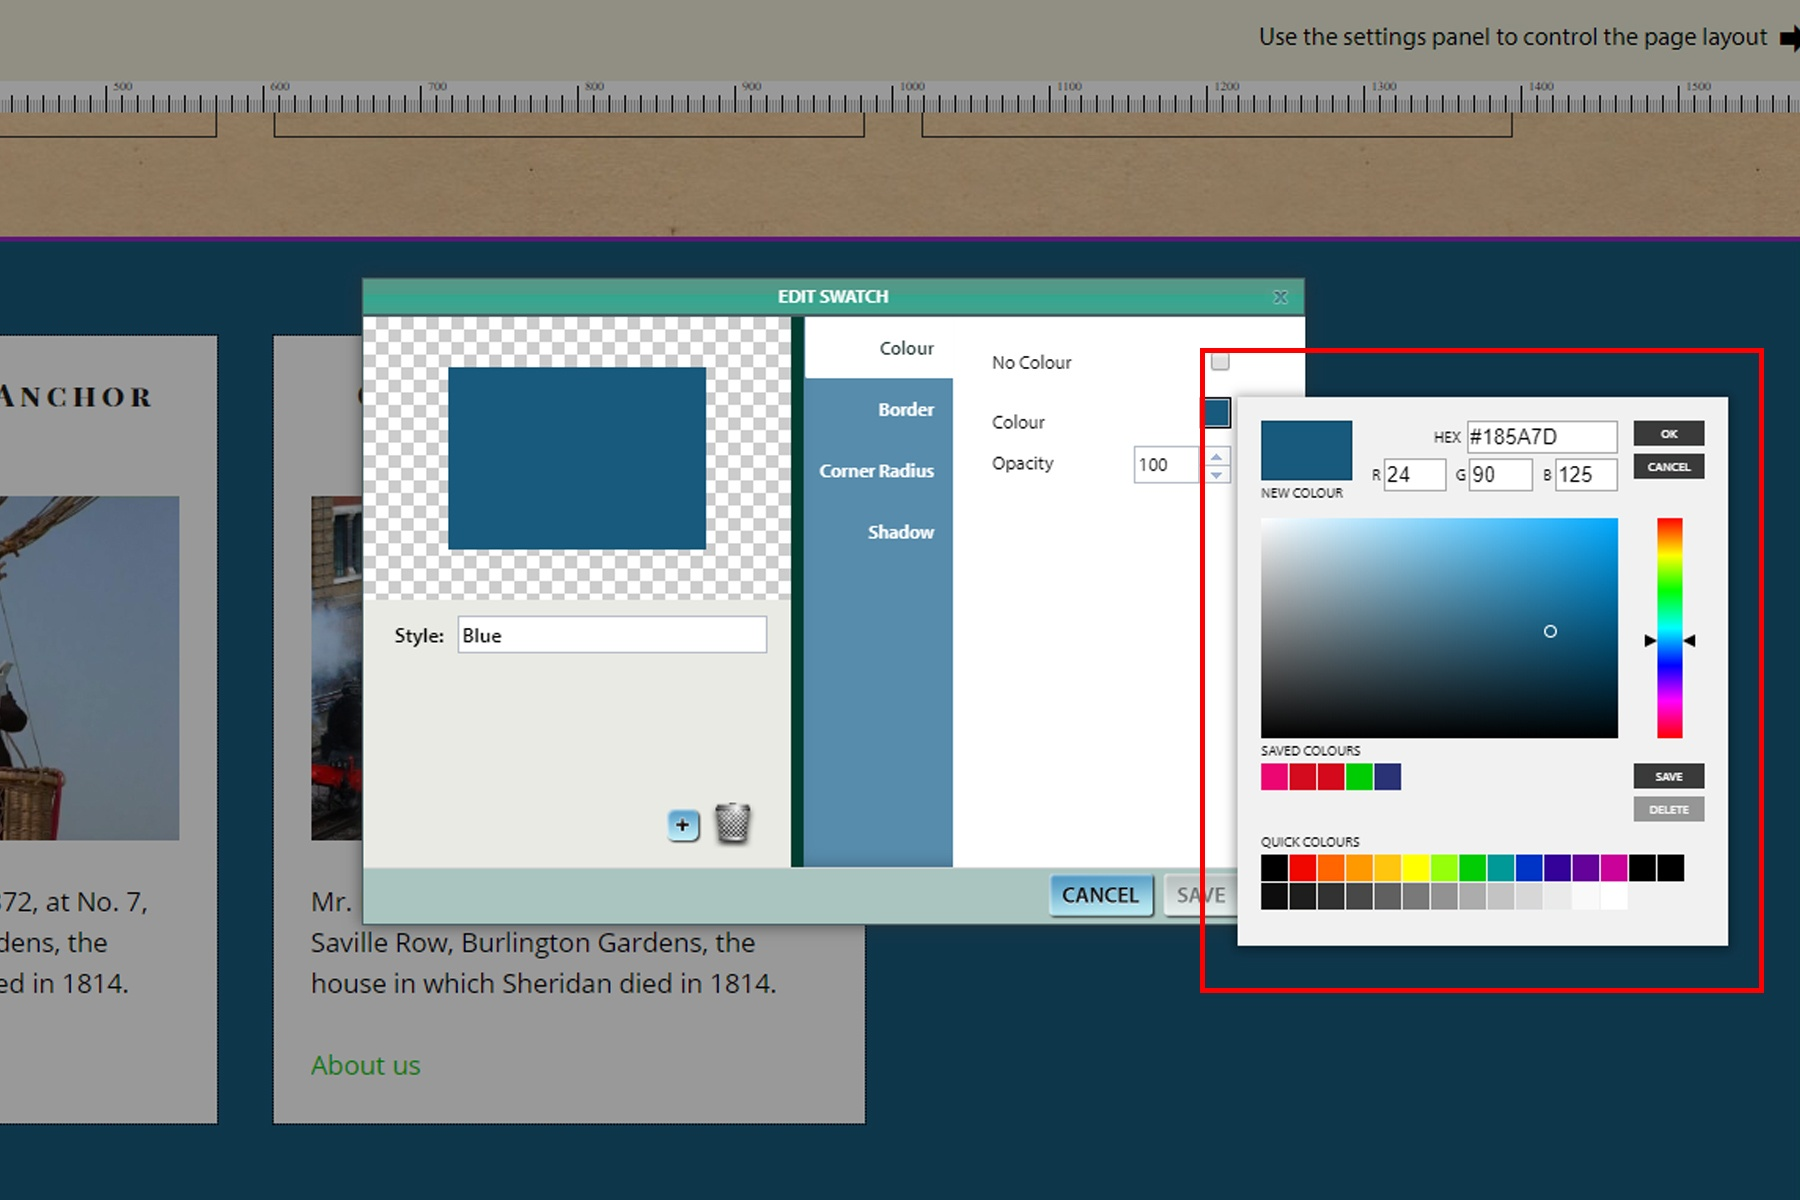 The Colour Picker image